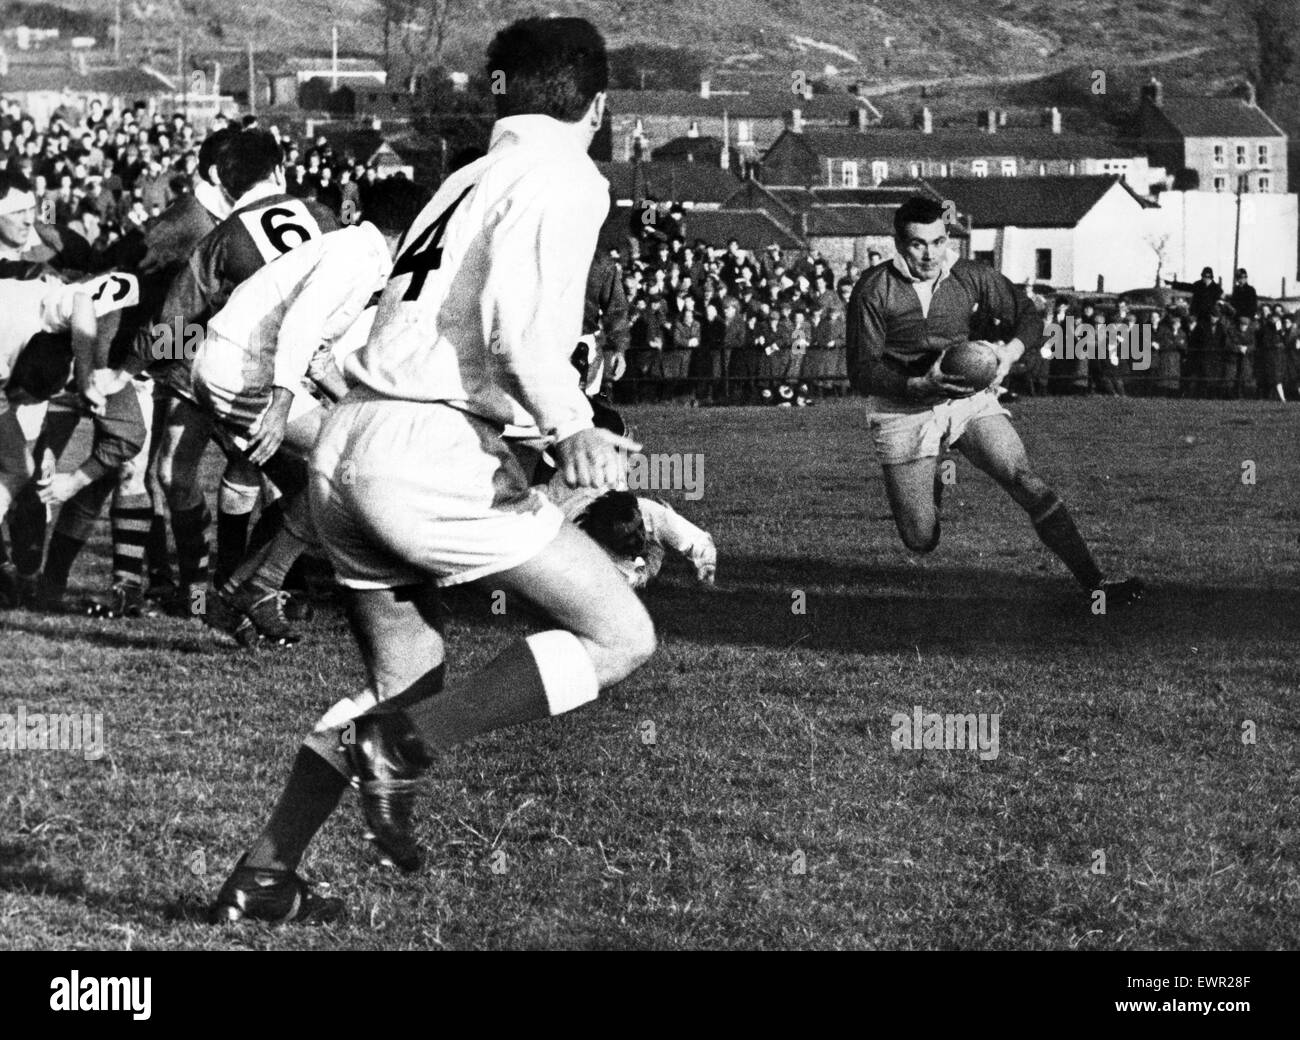 Welsh rugby at Treorchy, Reds forward Haydn Morgan  makes a break with the ball. 6th November 1965. - Stock Image